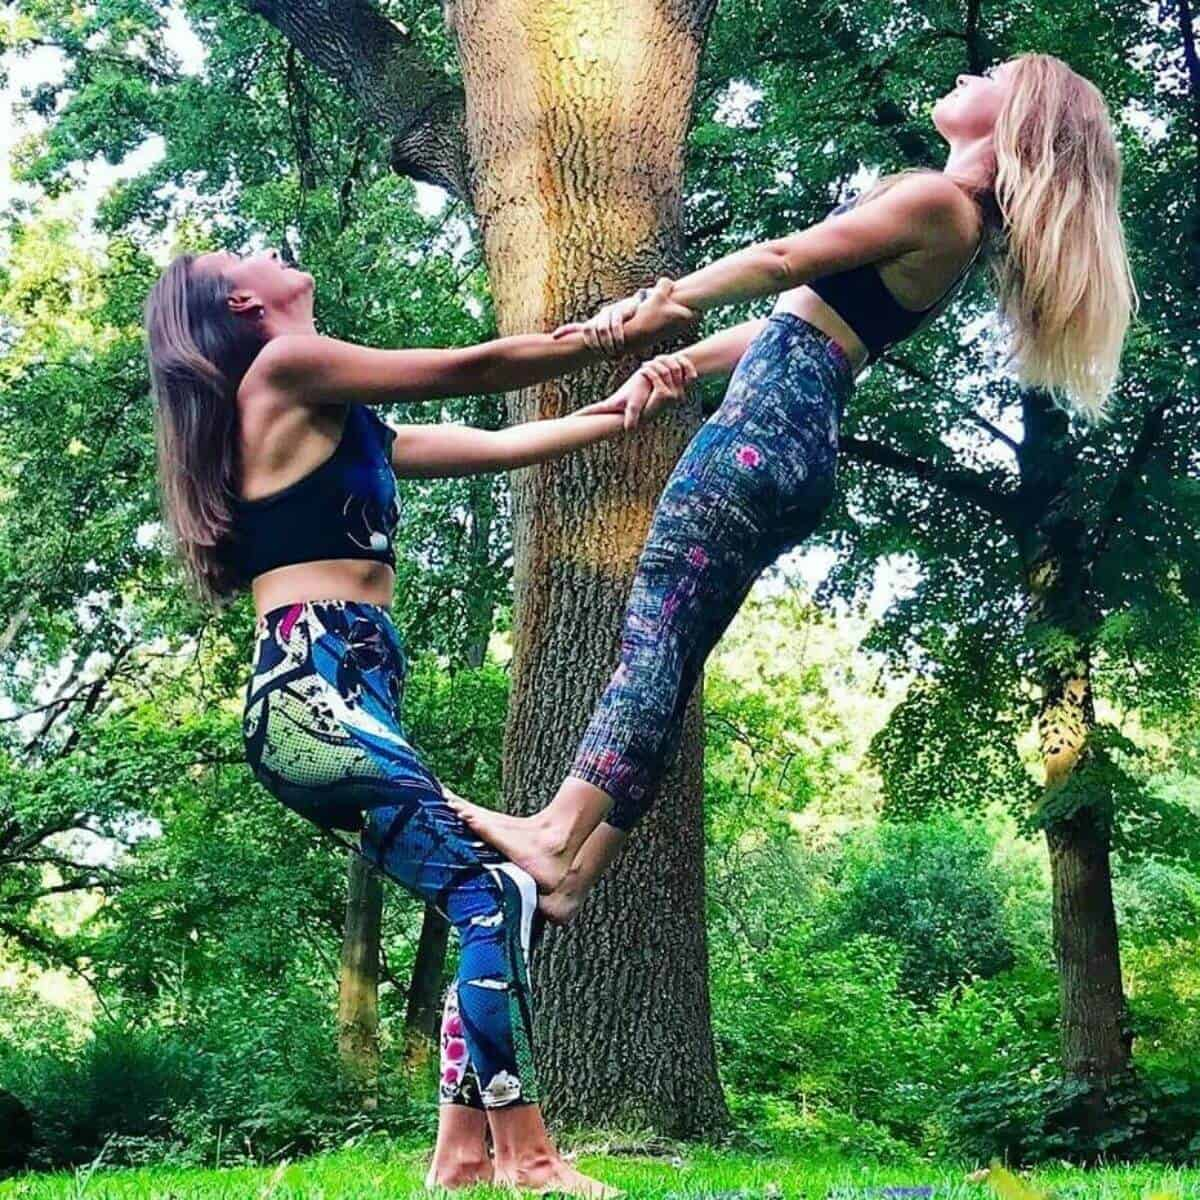 Ethical Activewear Brands For A More Sustainable Workout Image Credit - Ruby Moon #ethicalfashion #activewear